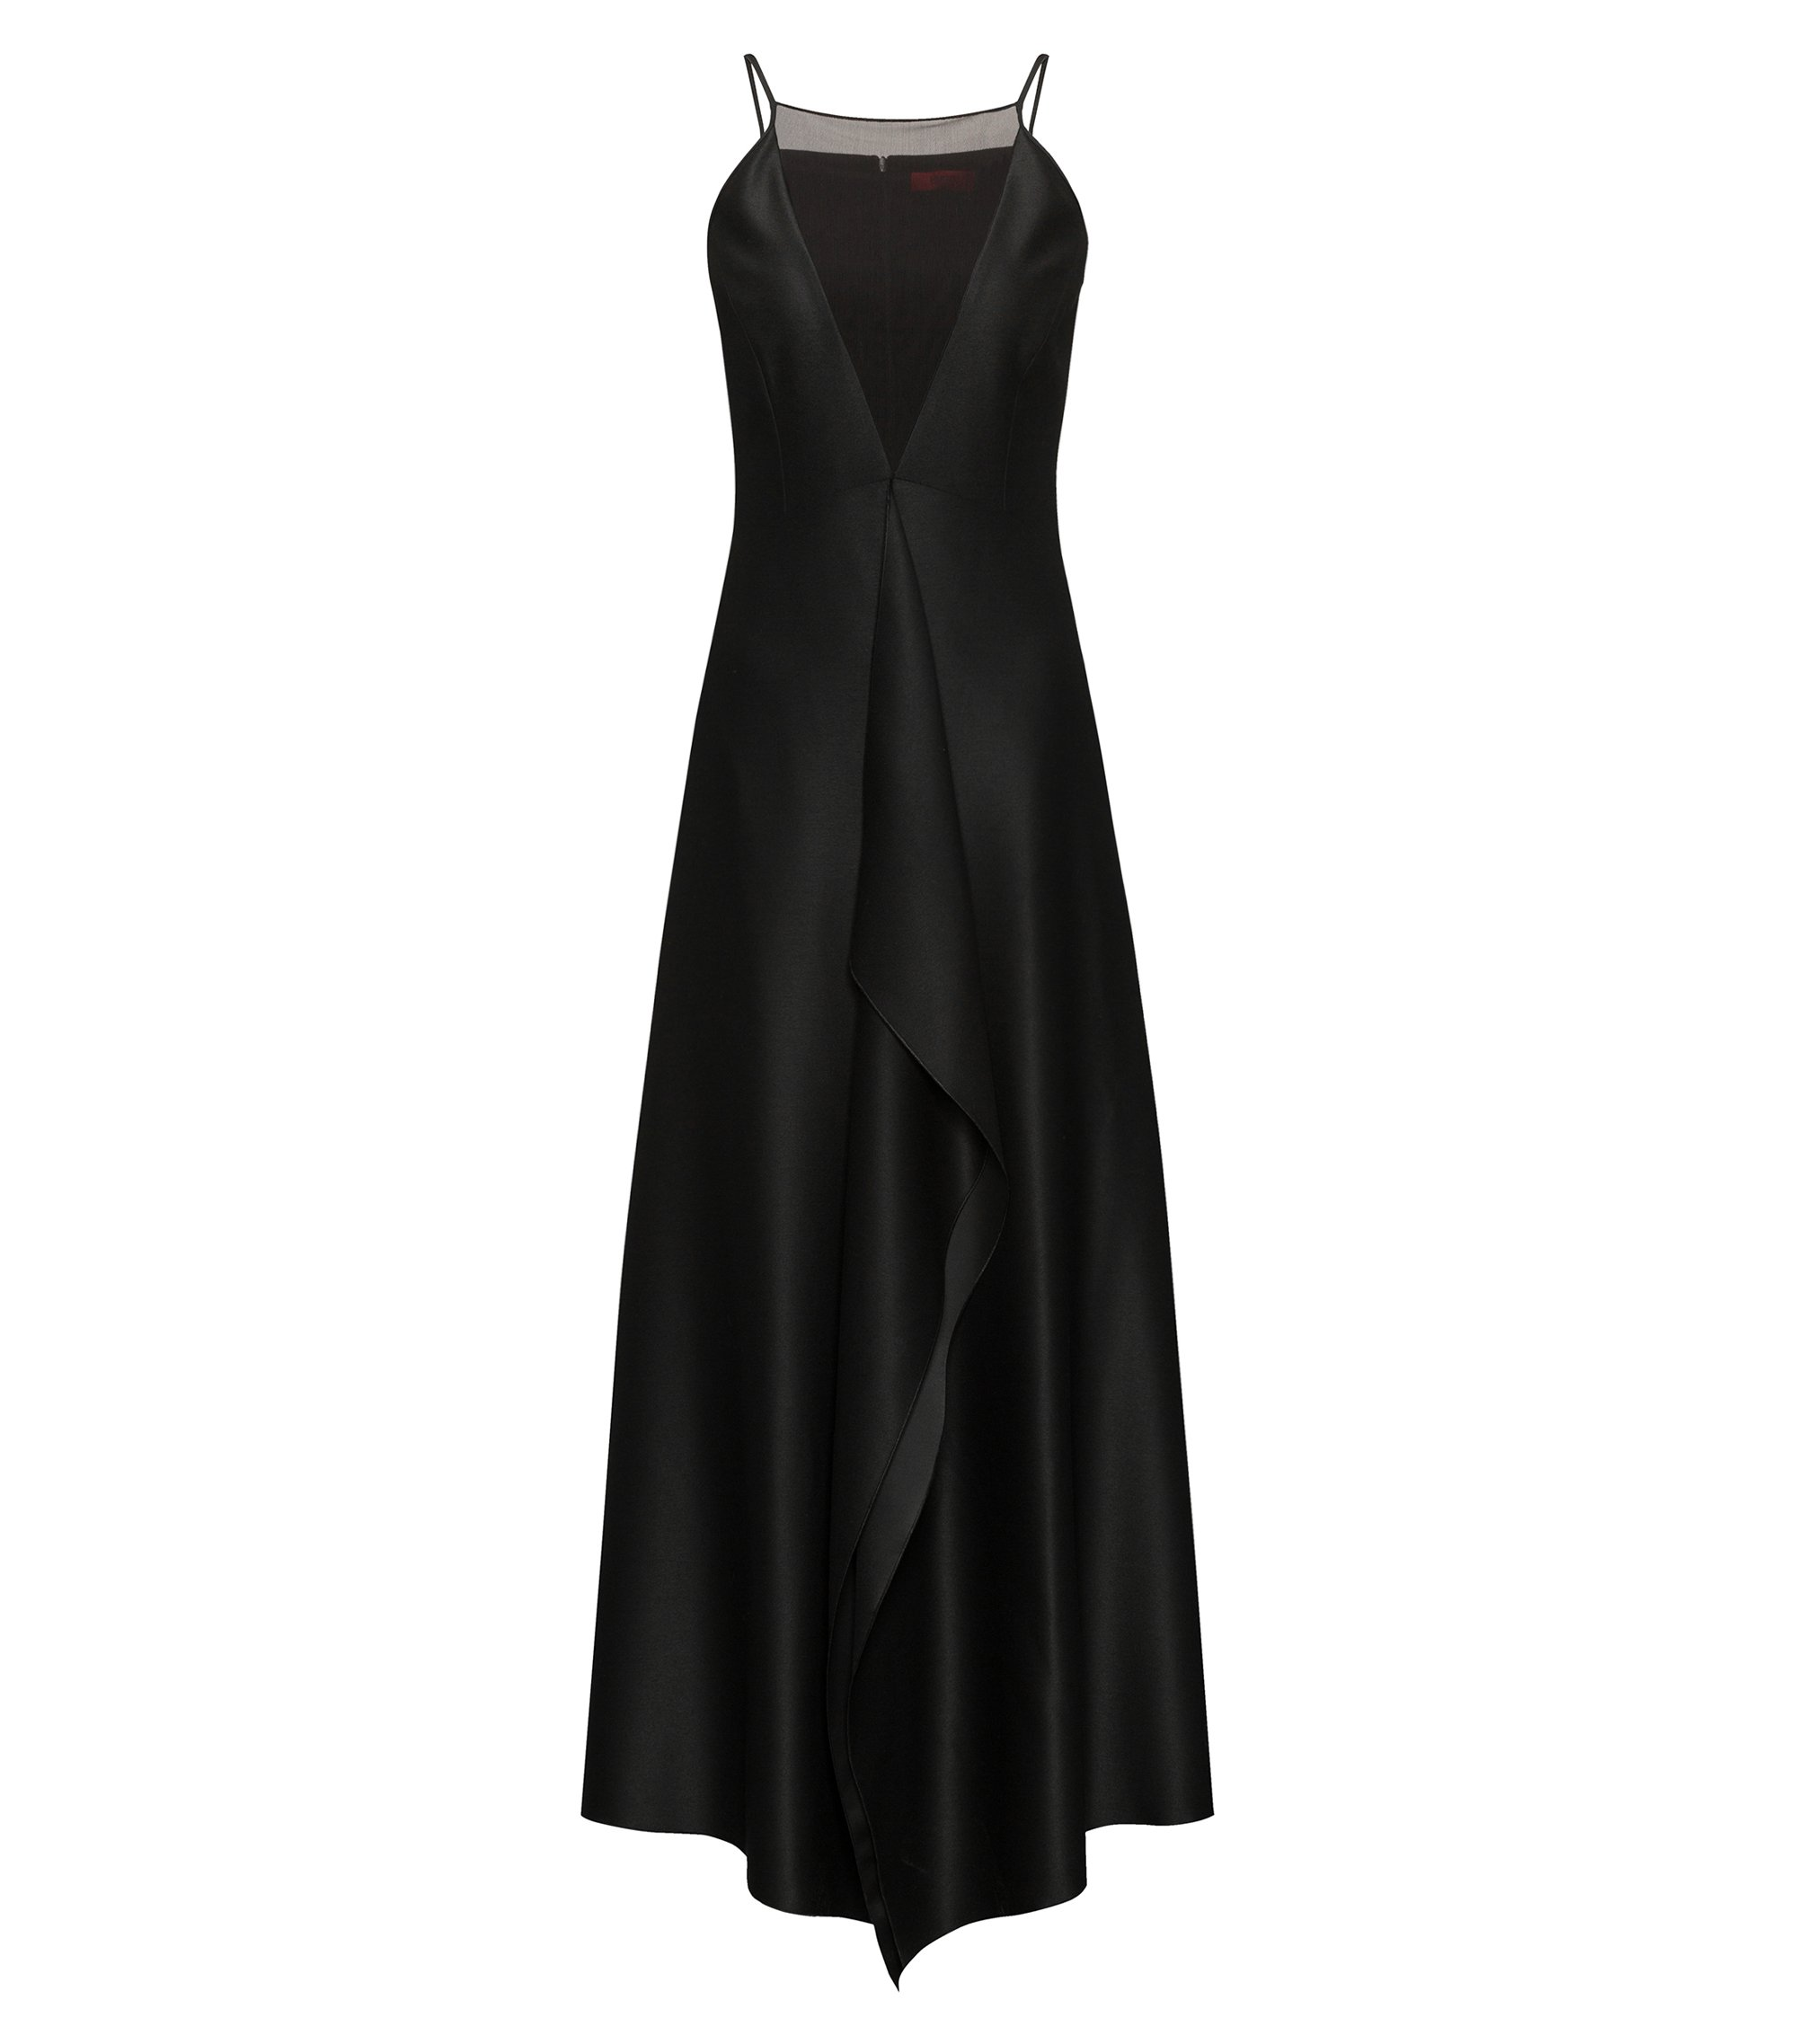 Cascade-front evening dress with mesh V neckline, Black